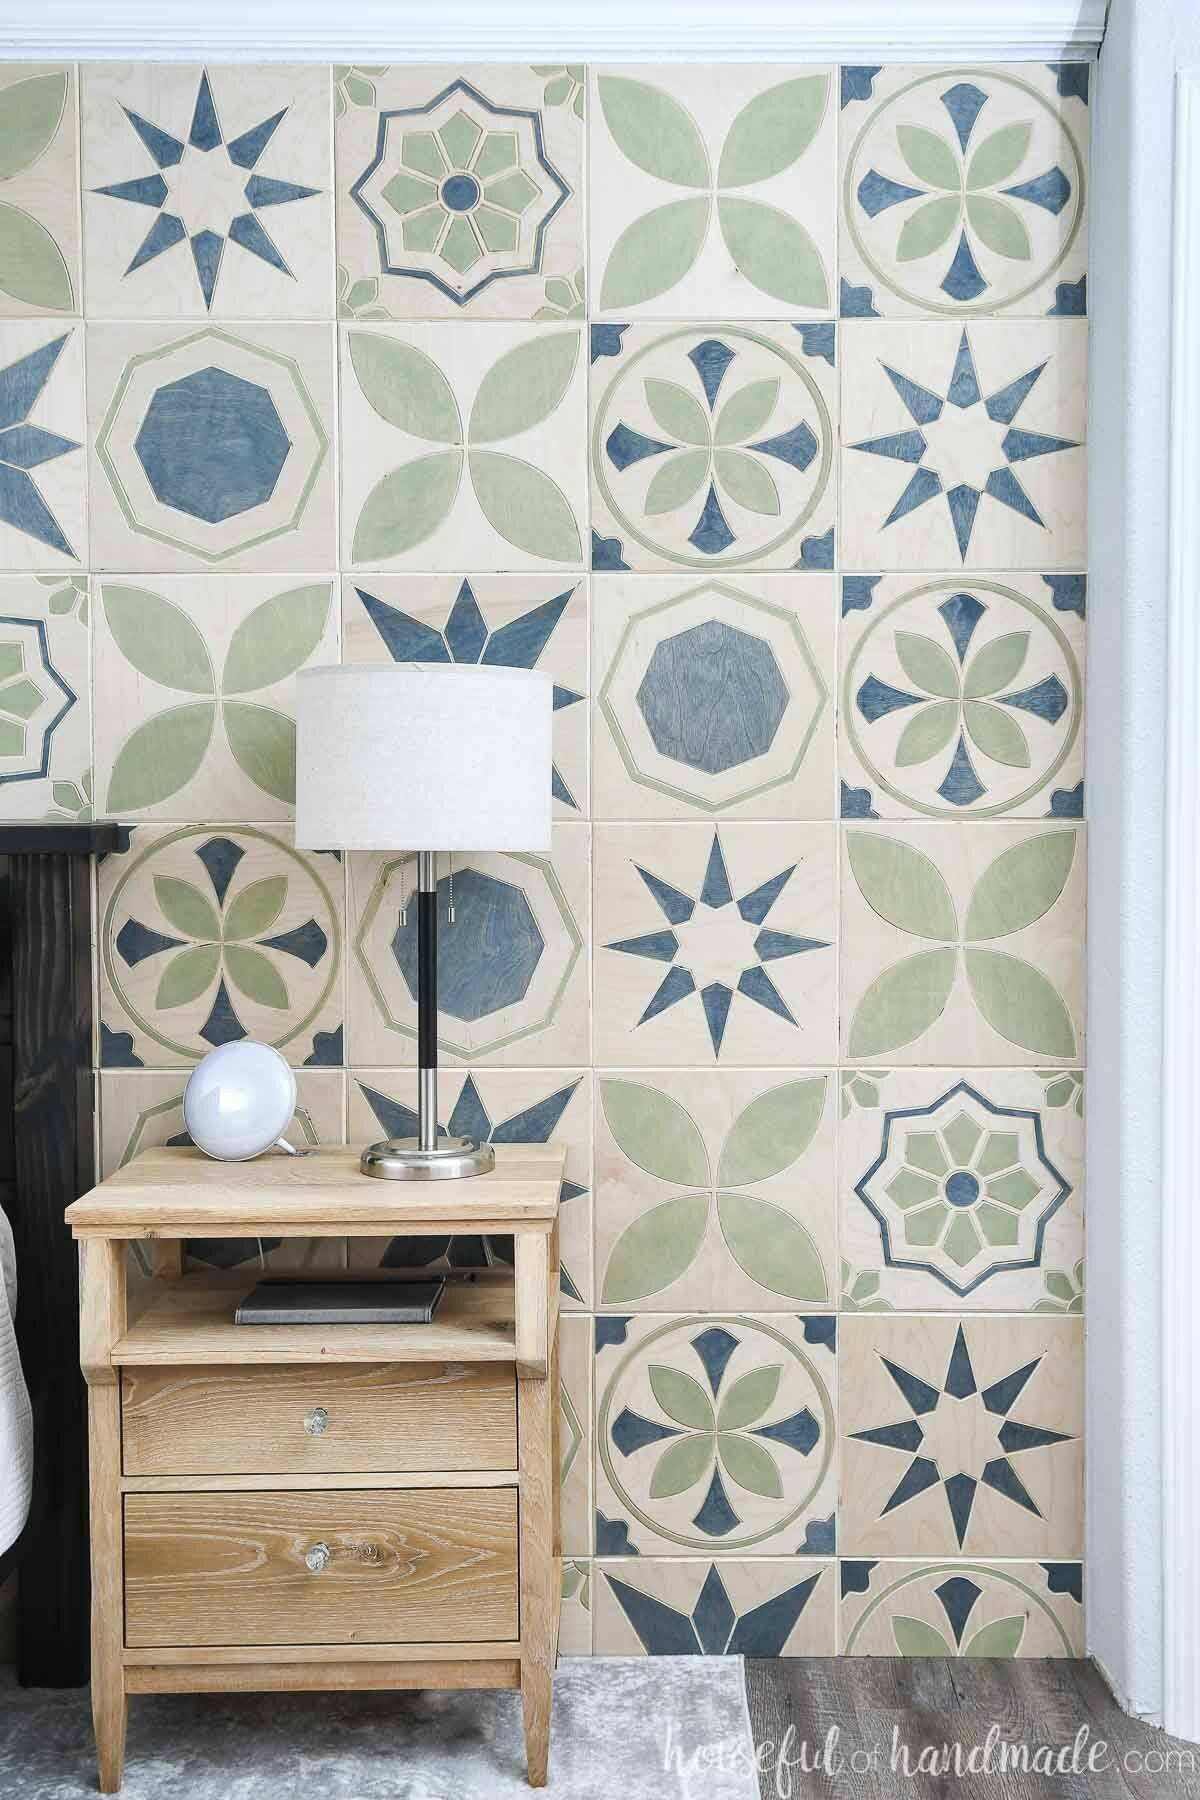 DIY accent wall that looks like patterned cement tiles.